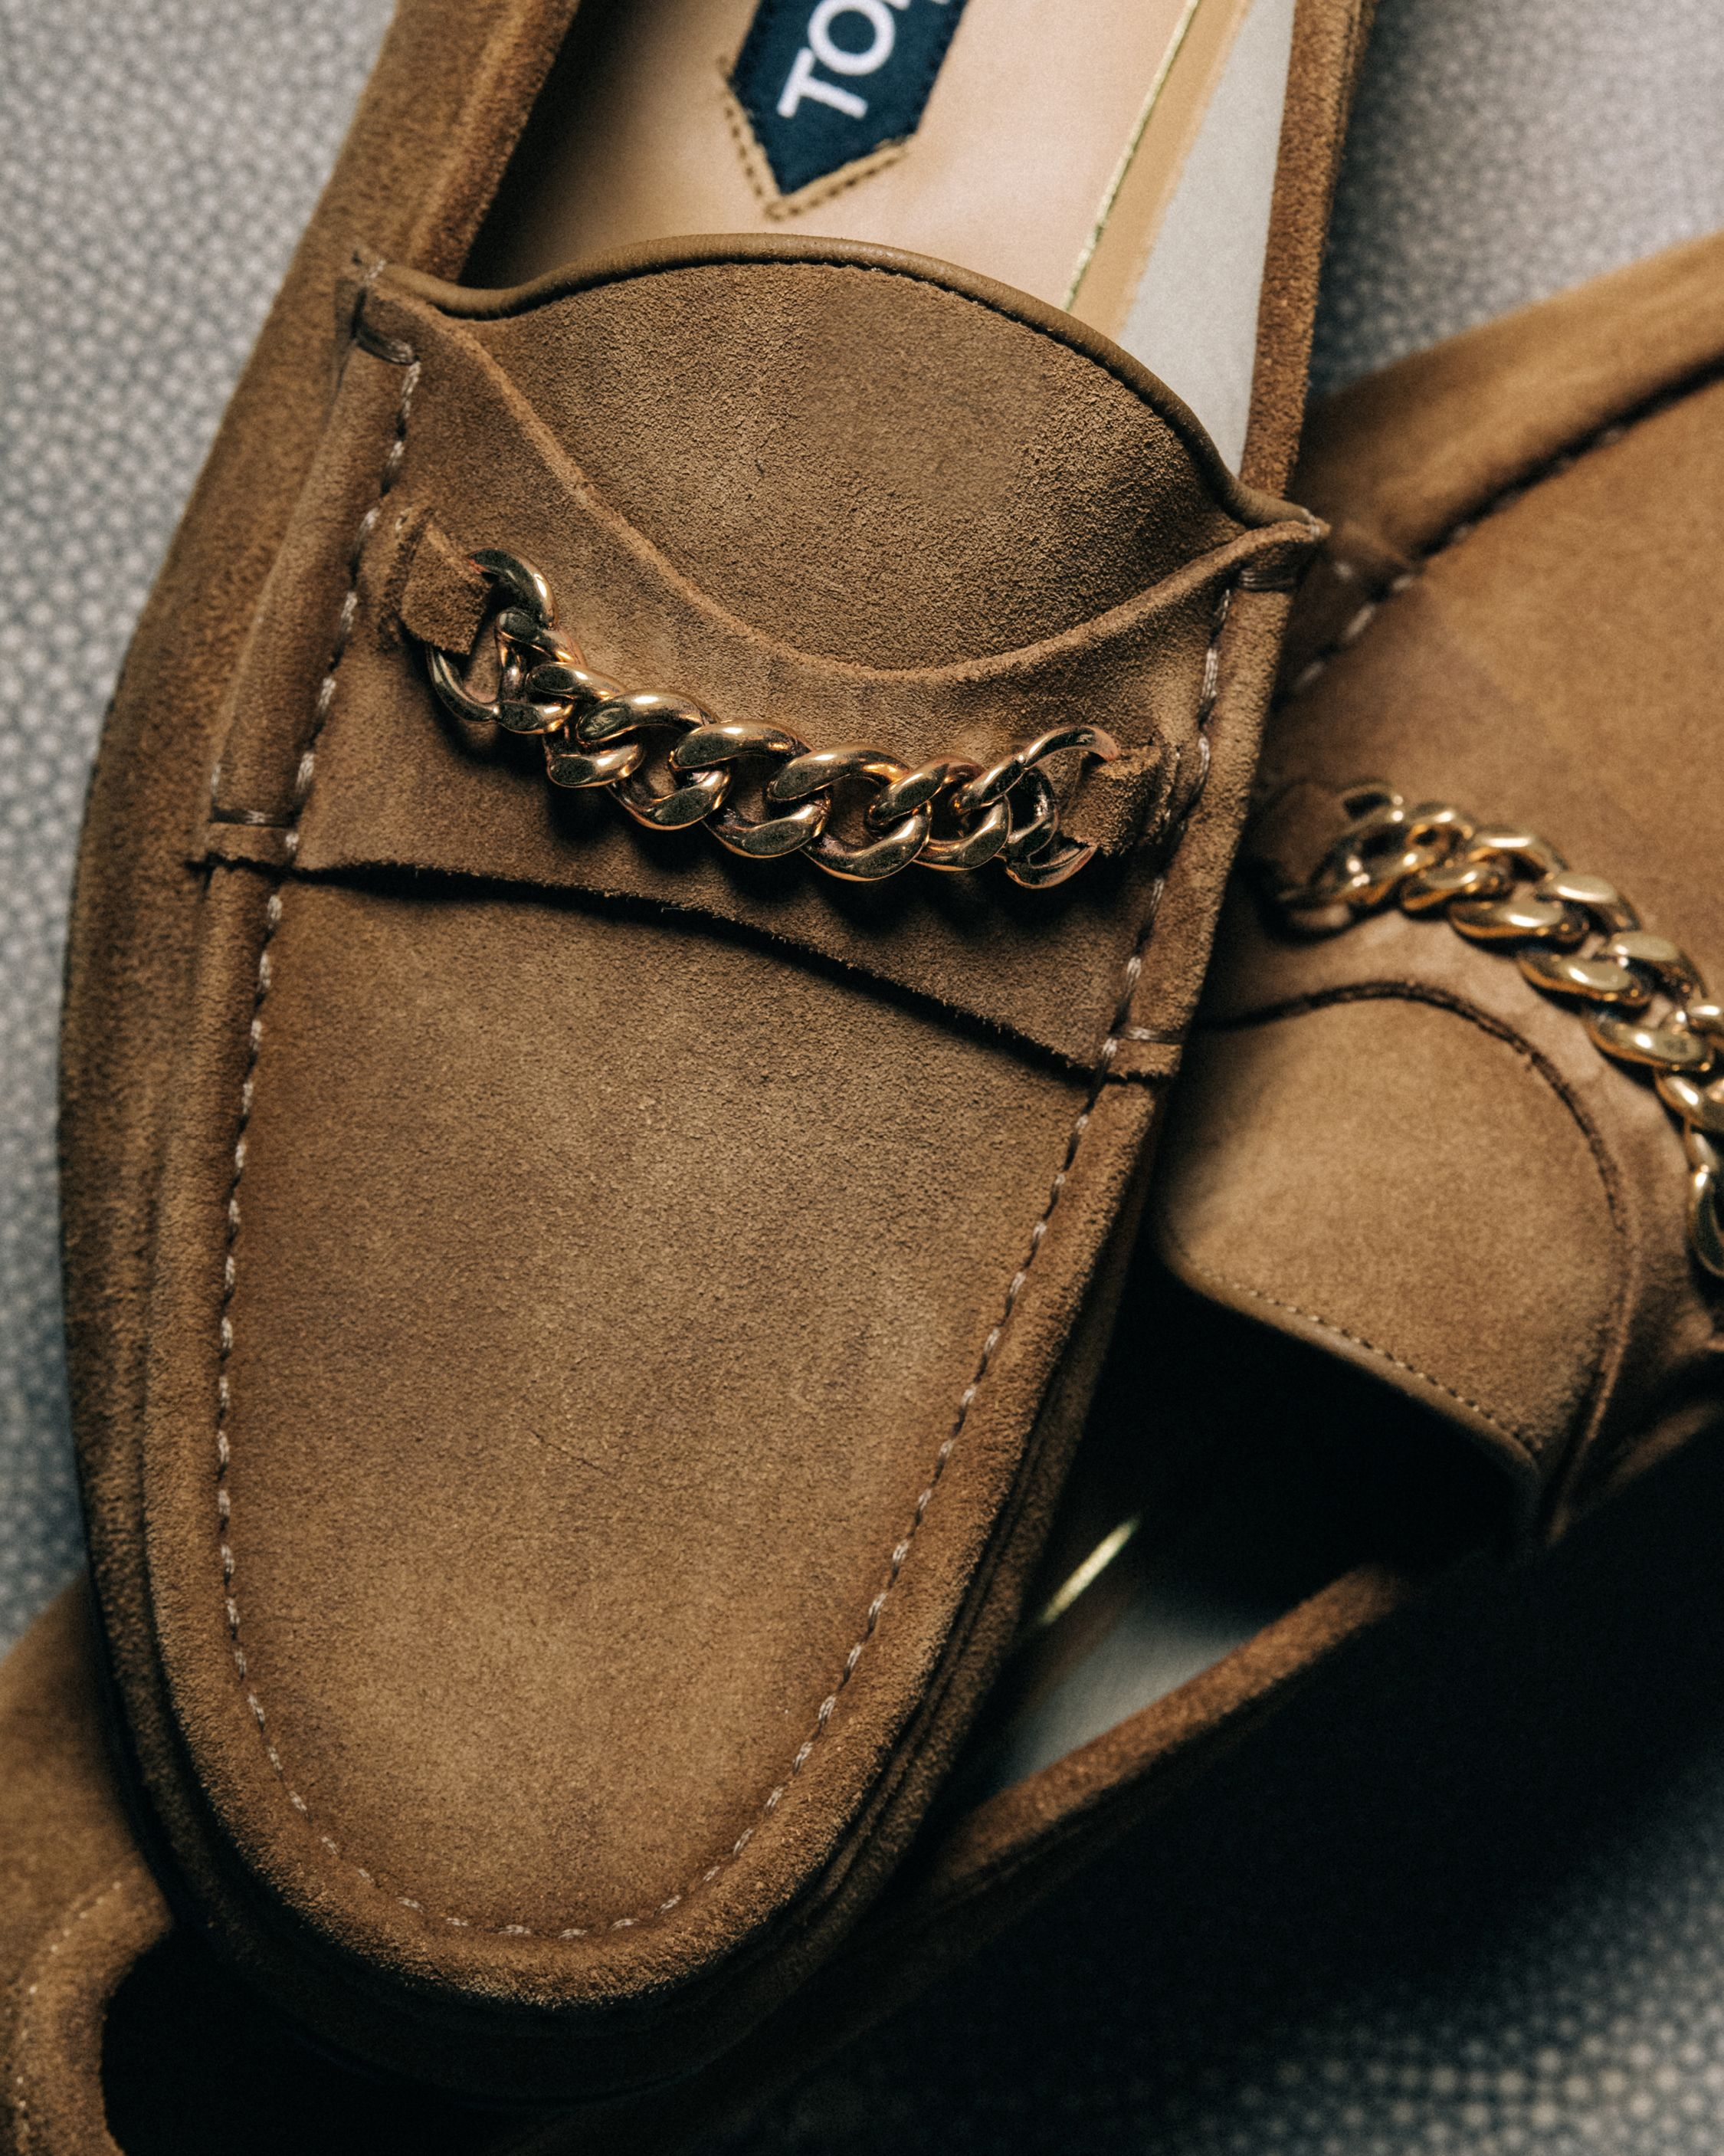 A Gift He Ll Love The Iconic Tom Ford Suede York Chain Loafers